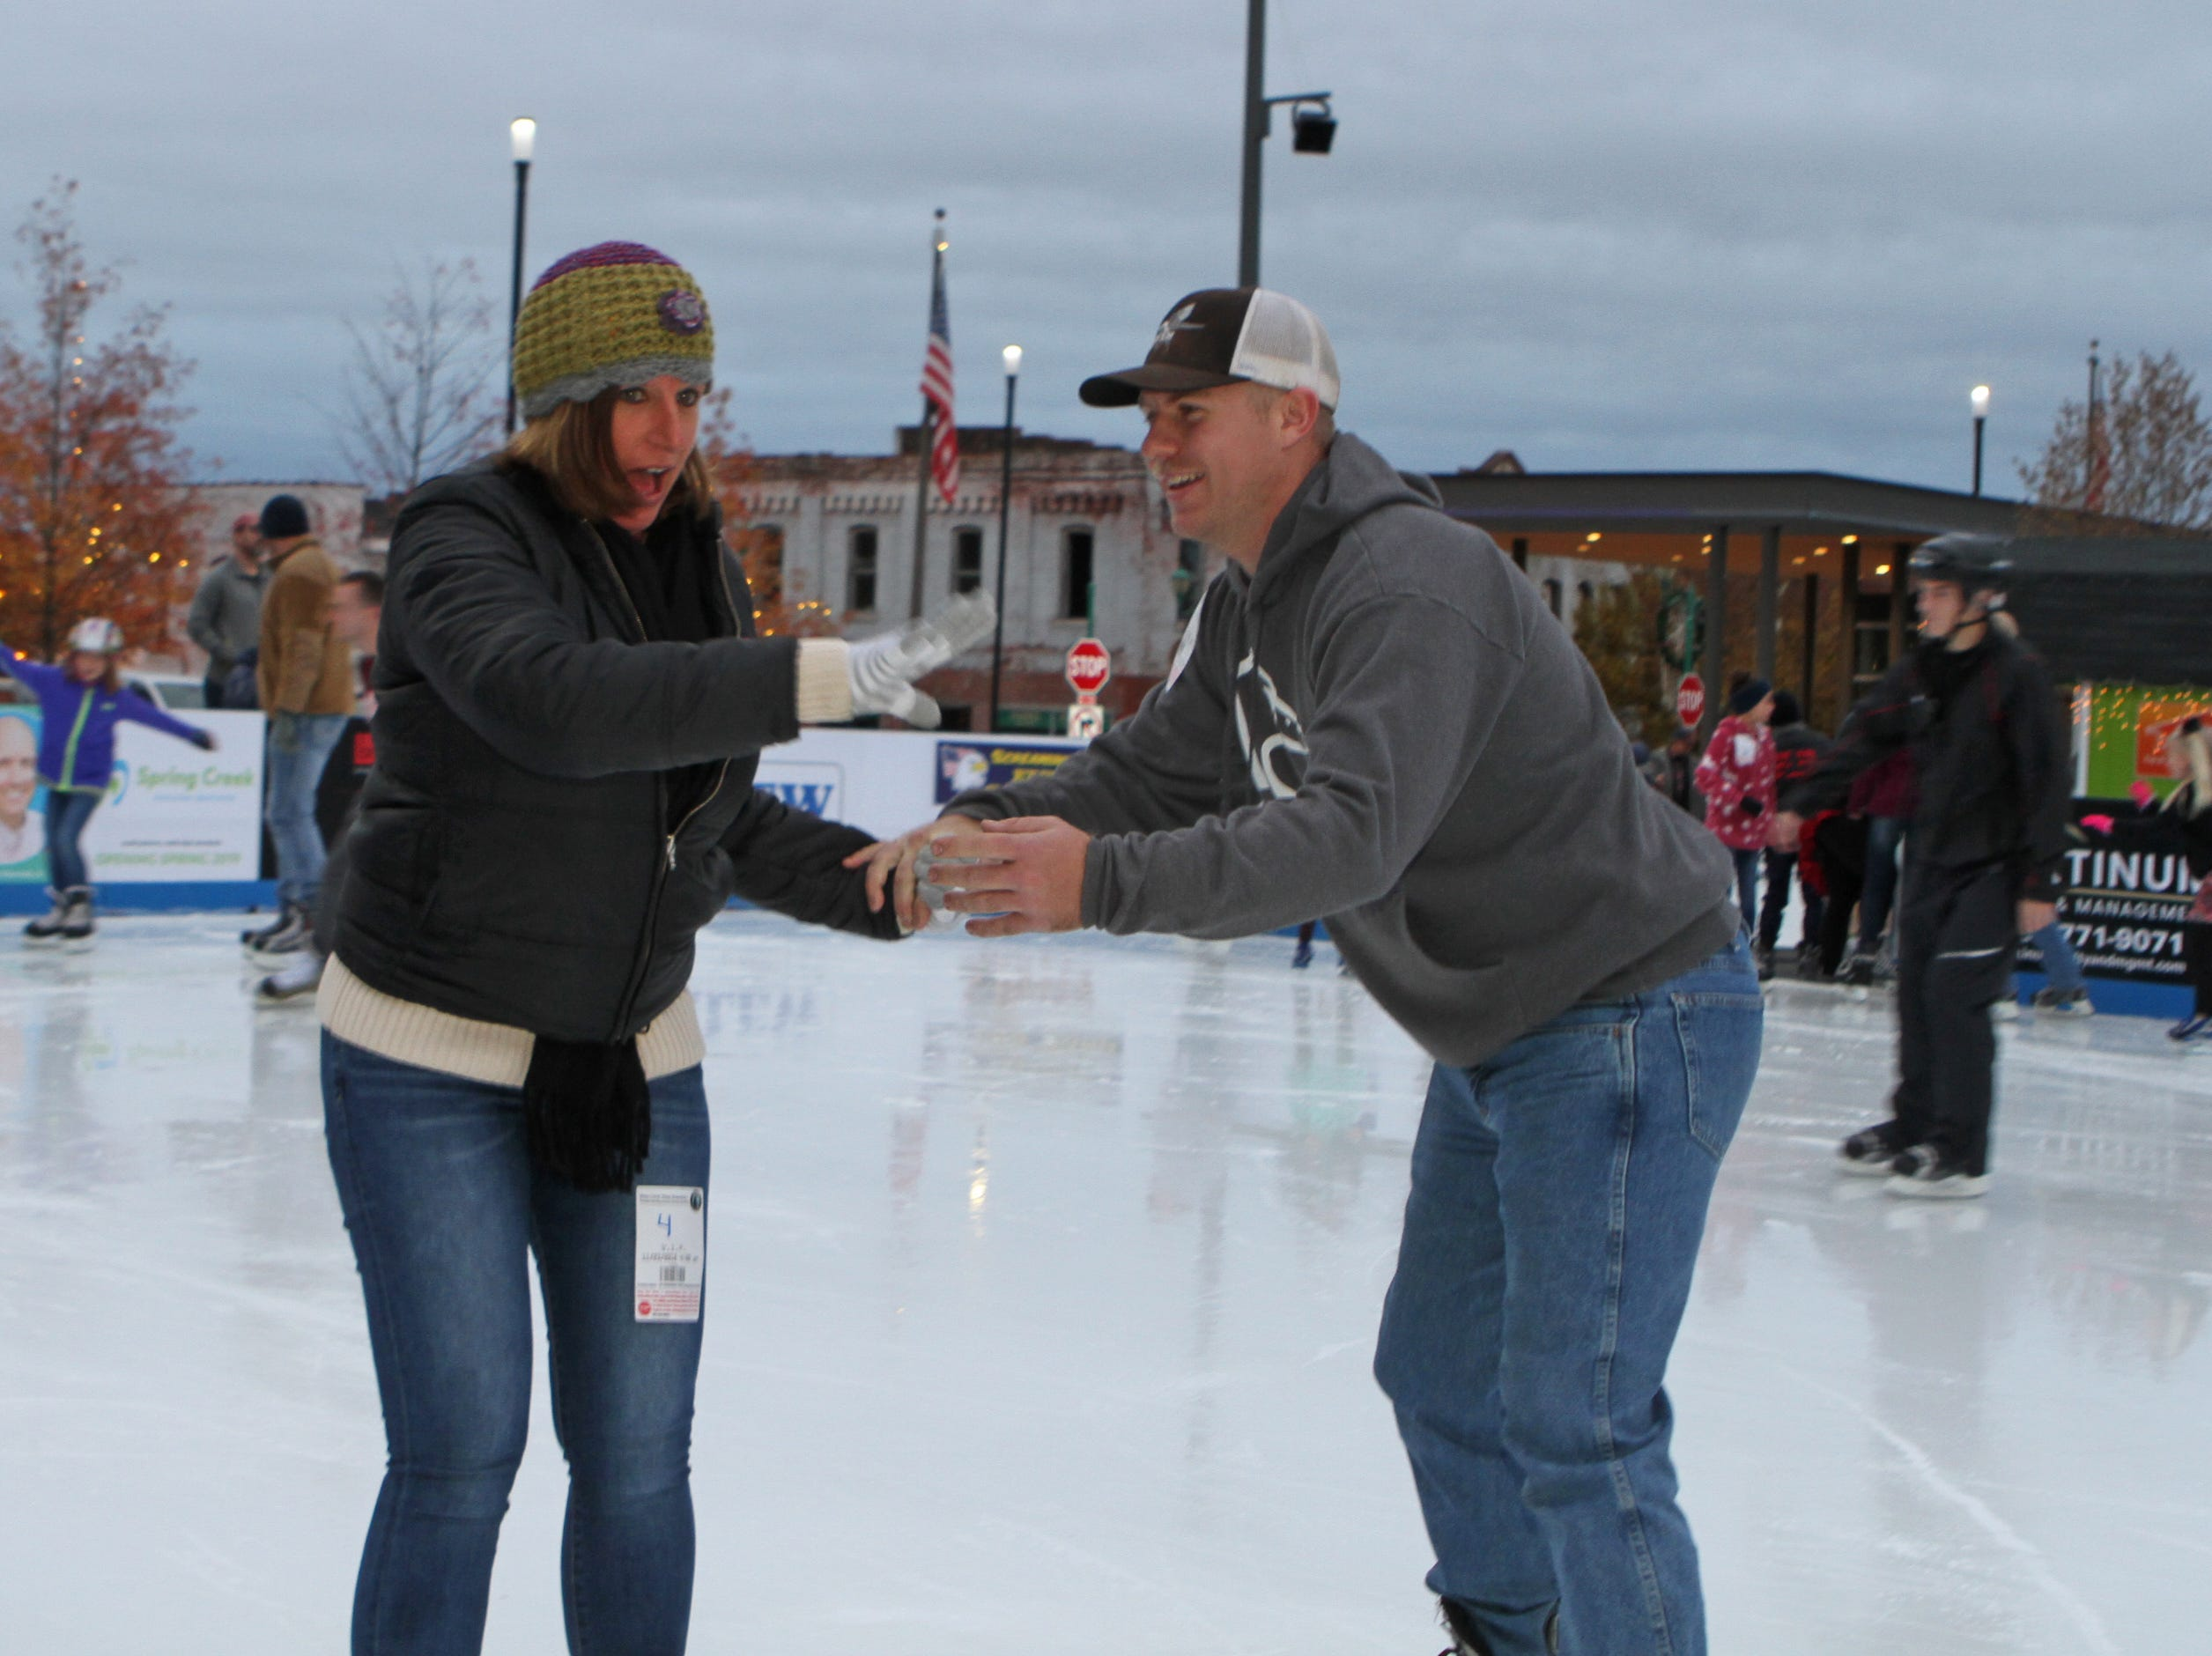 Nicole McMahon and John Rodgers at the Downtown Commons Winter Ice Rink opening on Friday, Nov. 23, 2018.